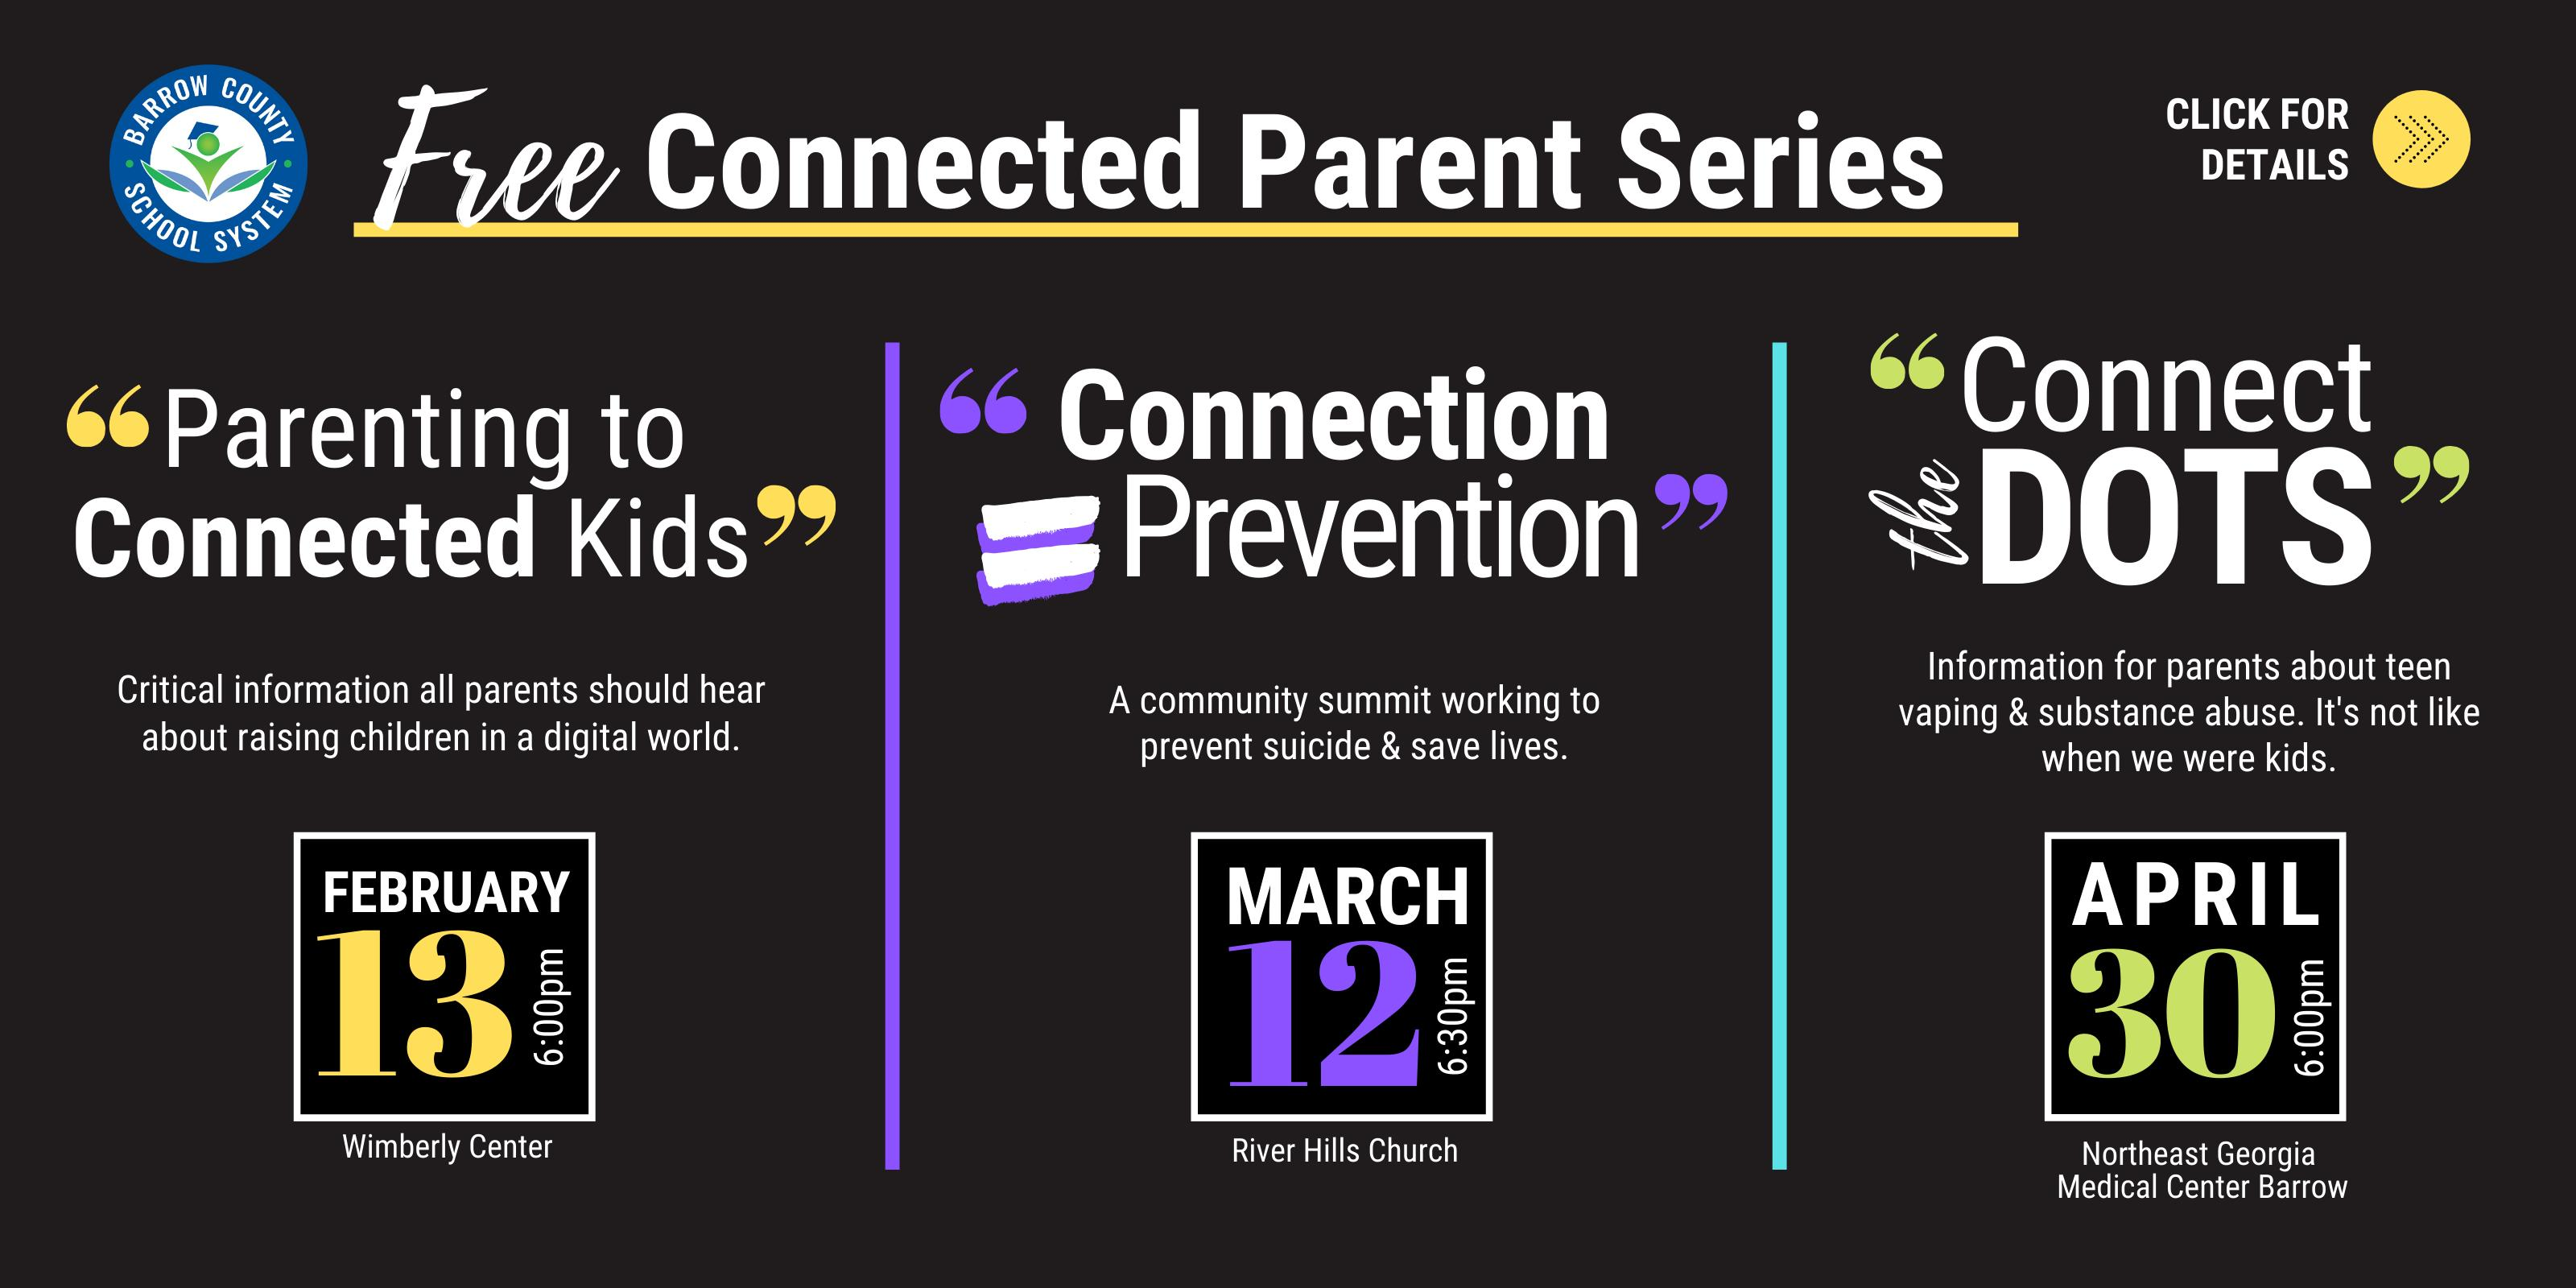 Connected Parenting Series - Free Presentations for Parents